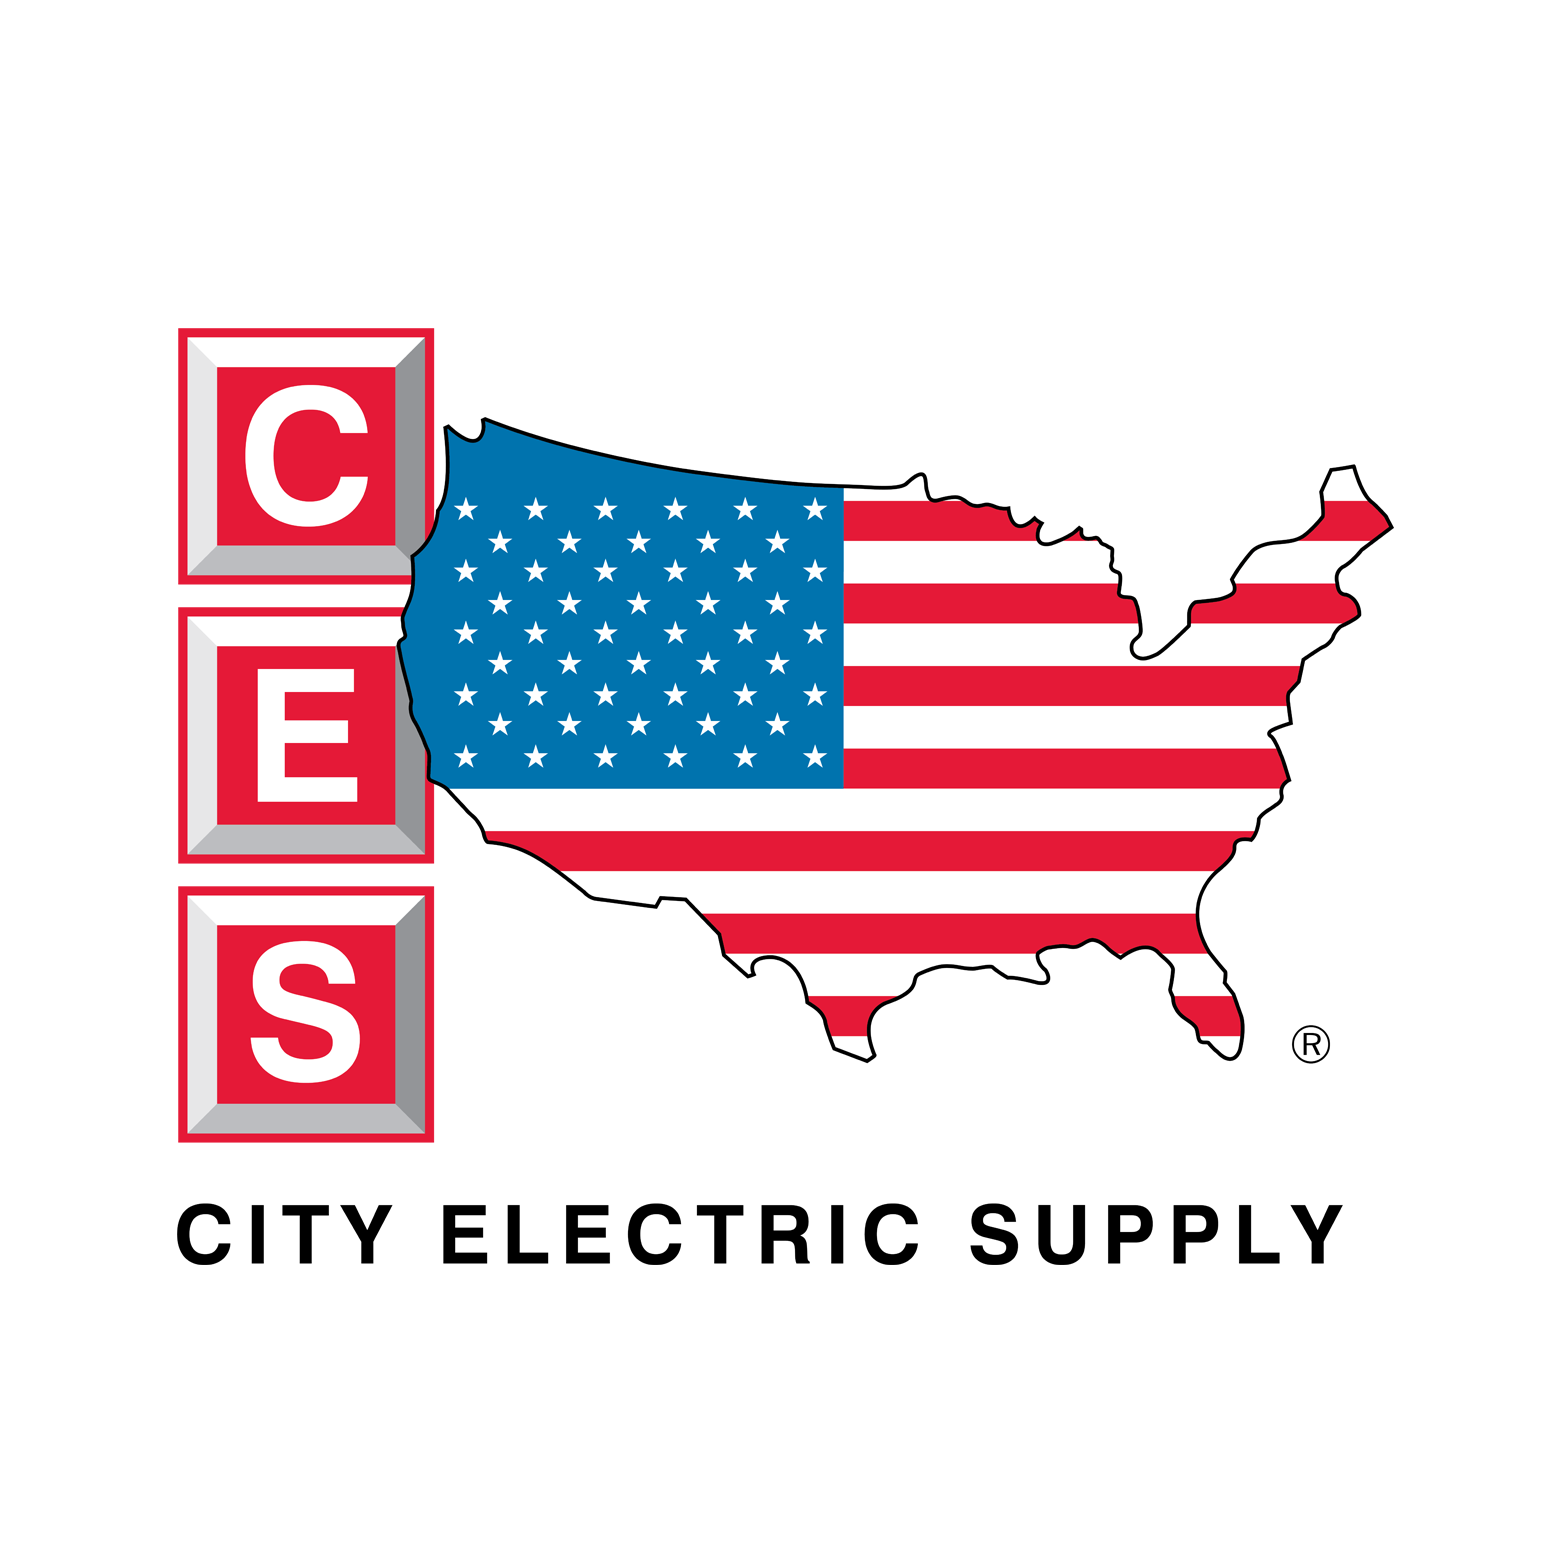 City Electric Supply Hilton Head